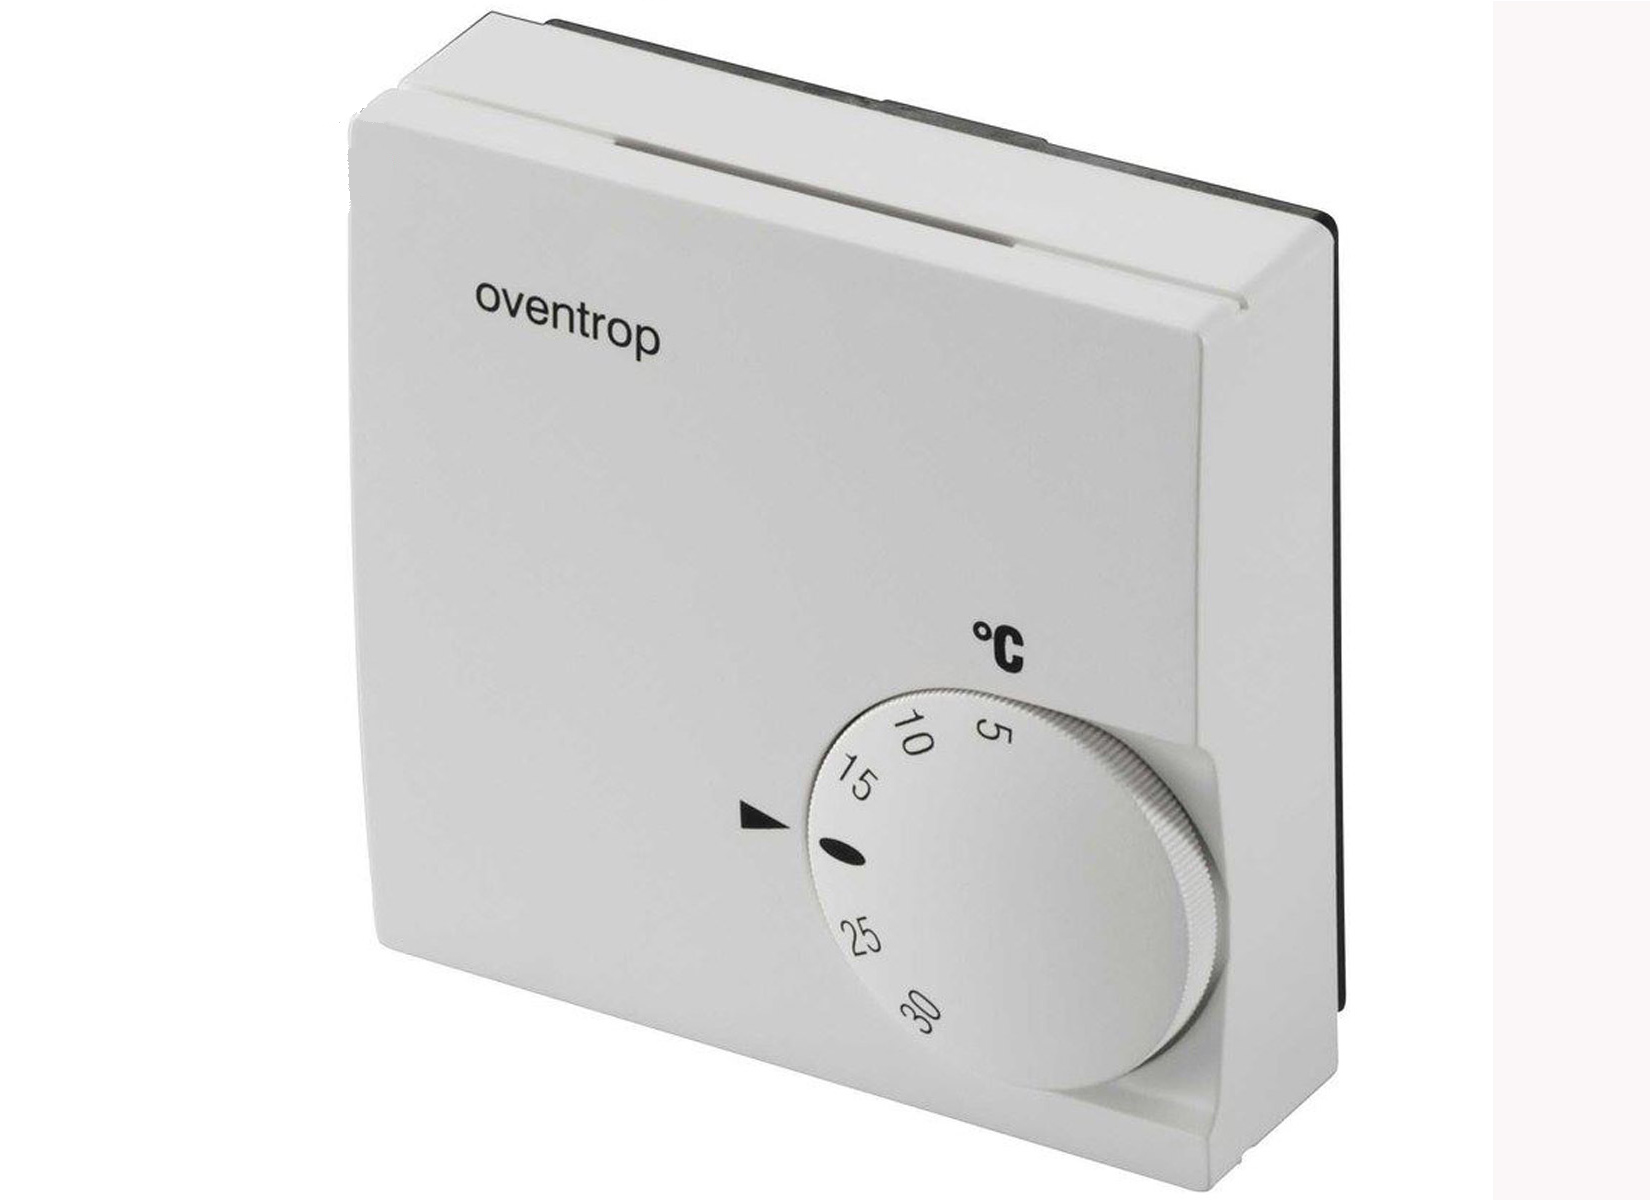 oventrop raumthermostat 230v fu bodenheizung aufputz. Black Bedroom Furniture Sets. Home Design Ideas